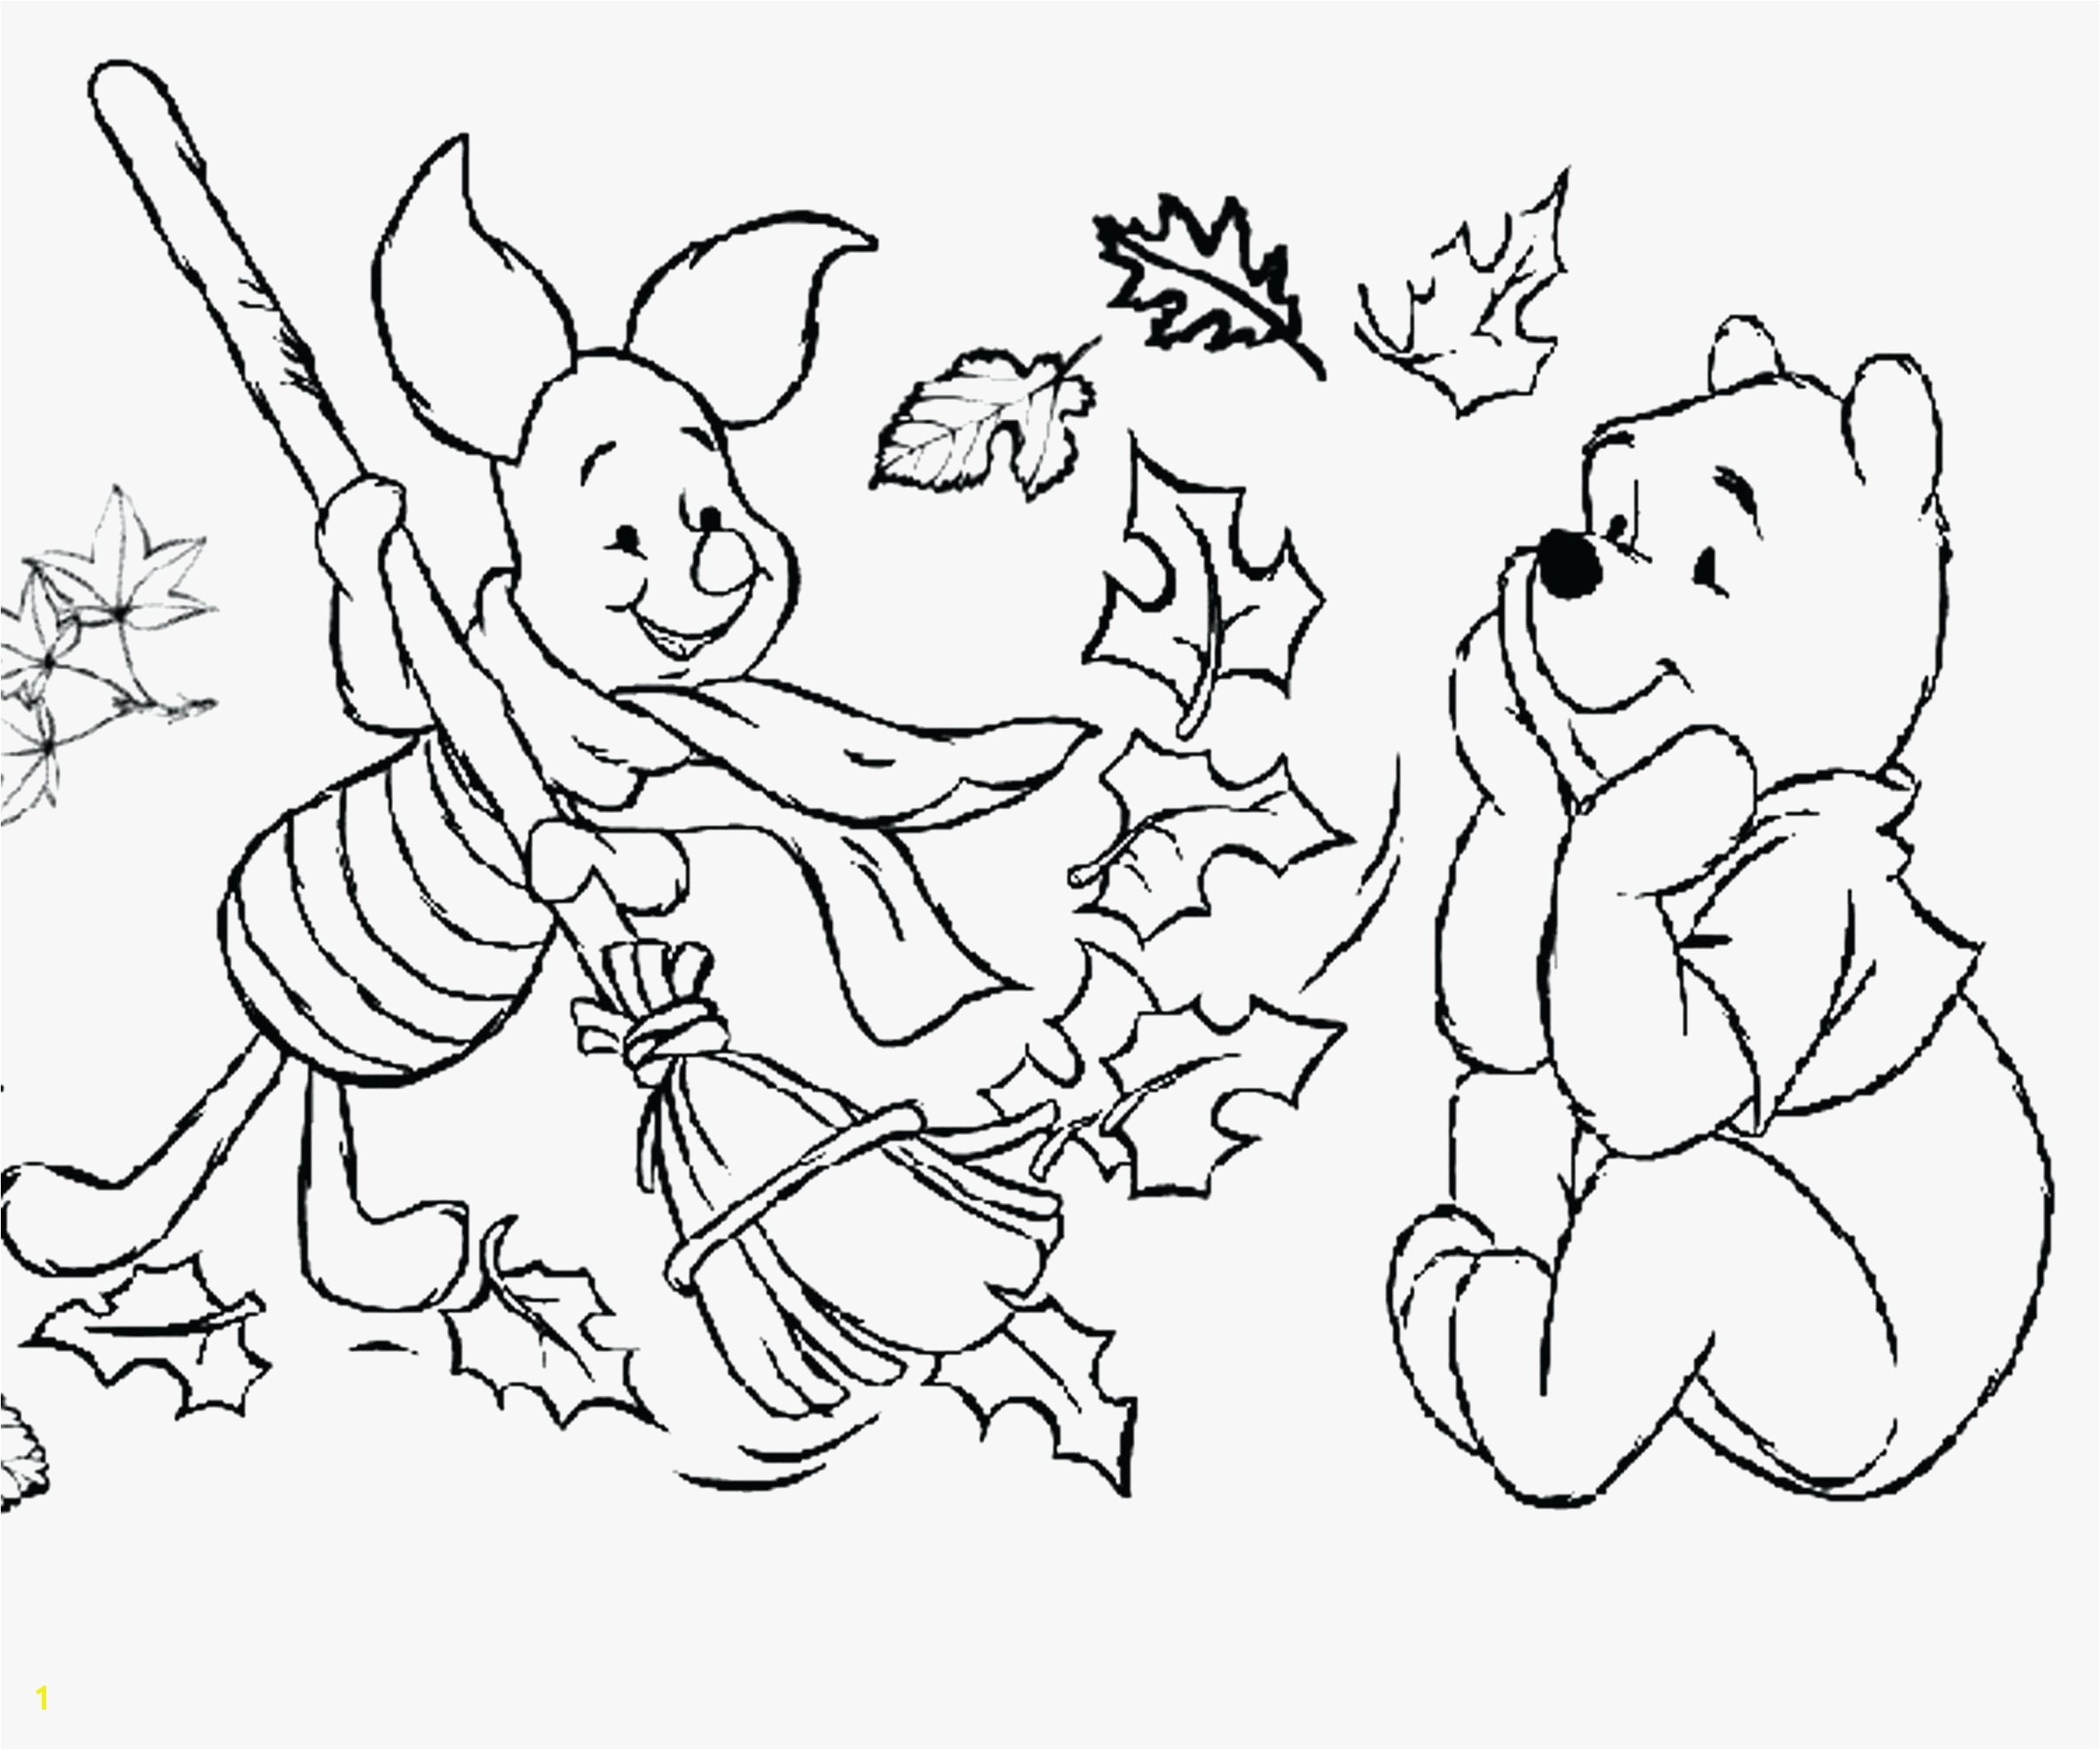 Coloring Pages Cool Coloring Page Unique Witch Coloring Pages New Crayola Pages 0d